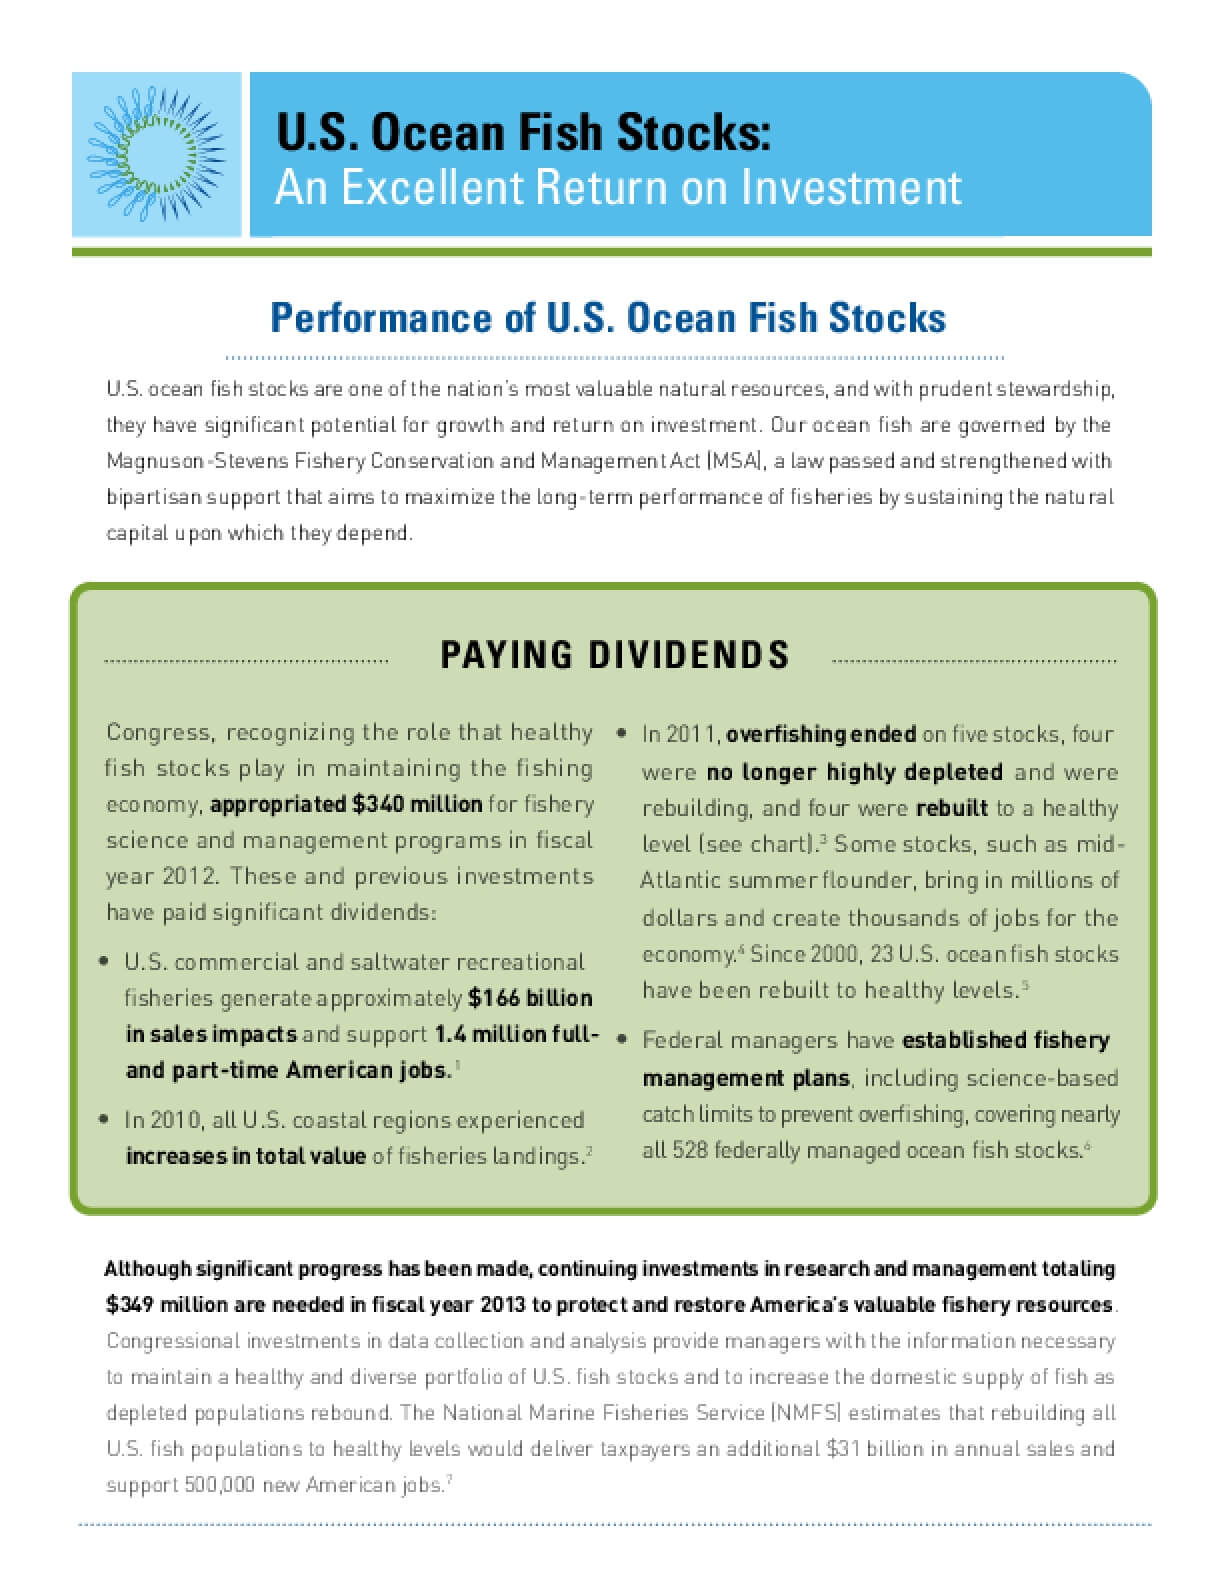 U.S. Ocean Fish Stocks: An Excellent Return on Investment